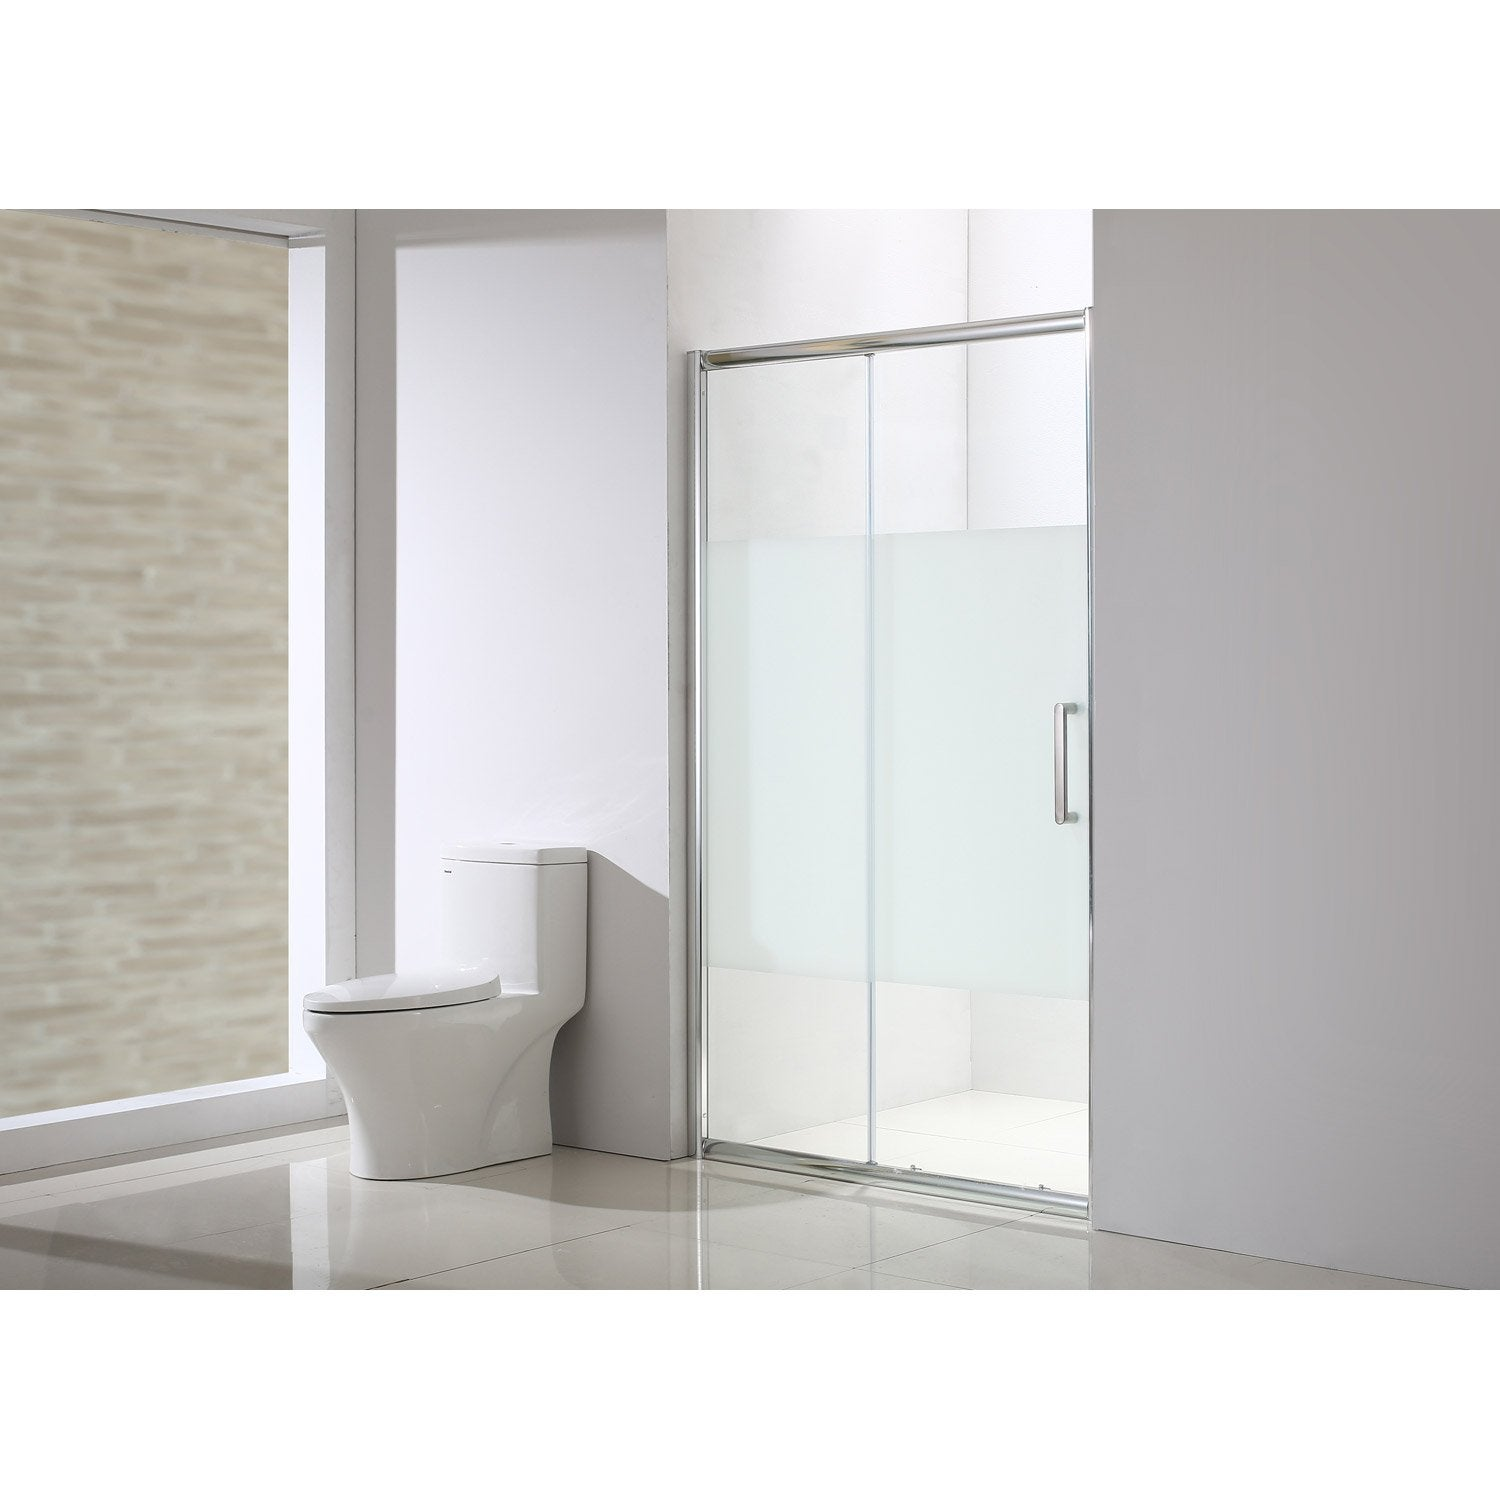 Porte de douche coulissante 140 5 cm s rigraphi quad for Porte coulissante salon 140 cm